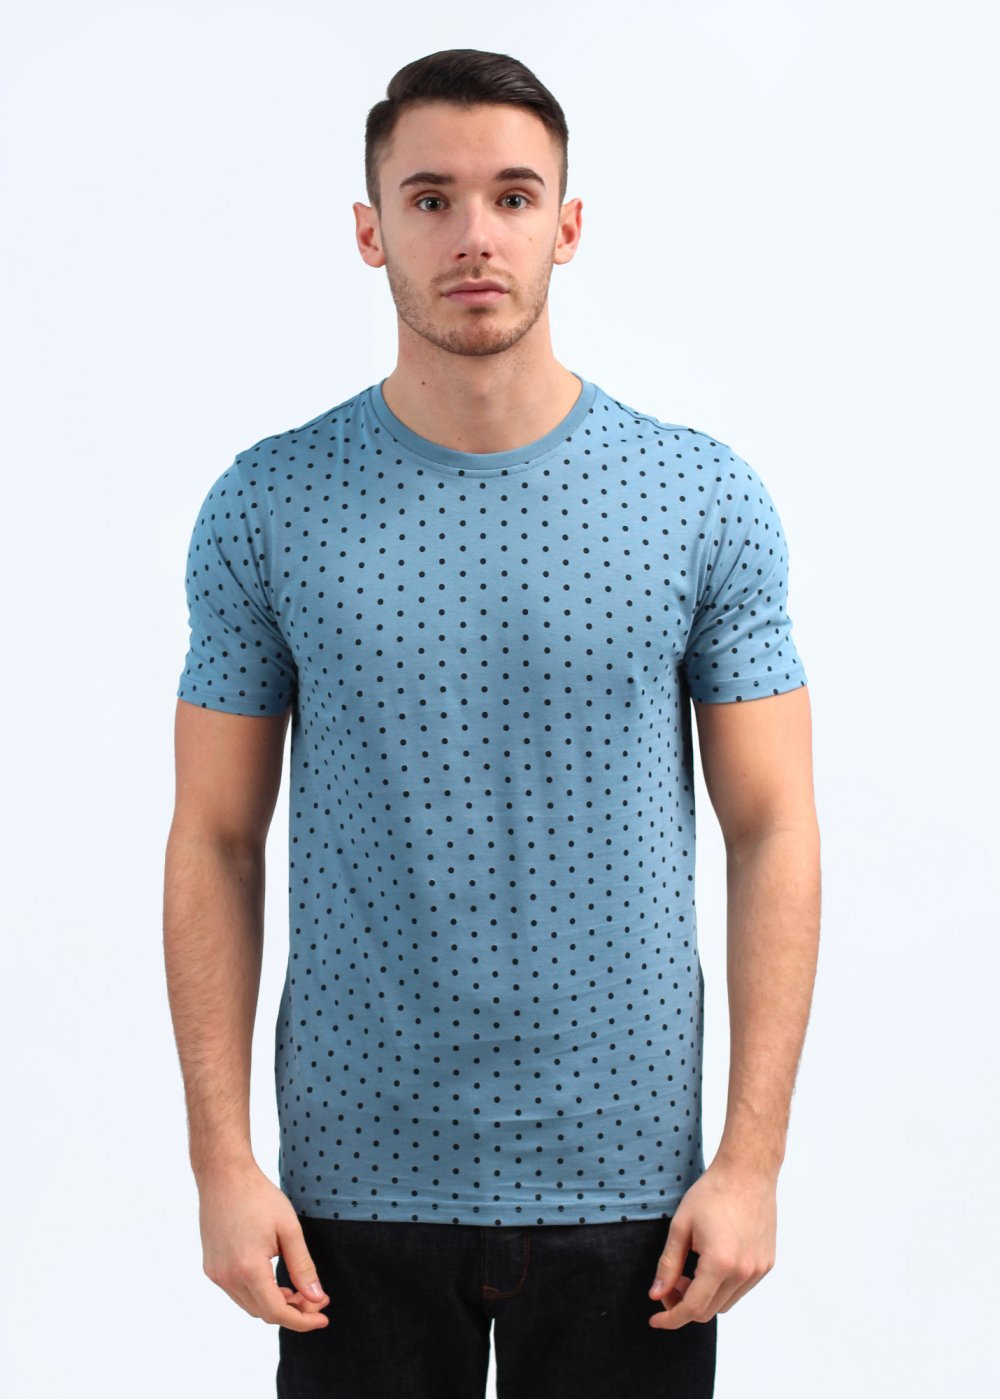 Paul smith jeans skinny polka dot t shirt light blue Light blue t shirt mens